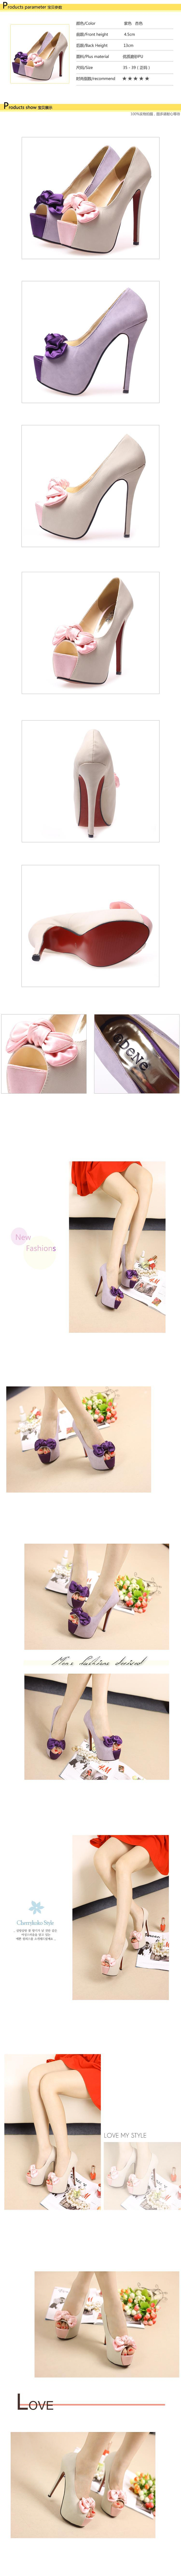 2015 Summer Women Pumps Red Bottom High Heels Flatform Wedding Shoes Cute Bow Pumps Sapatos Femininos Free Shipping